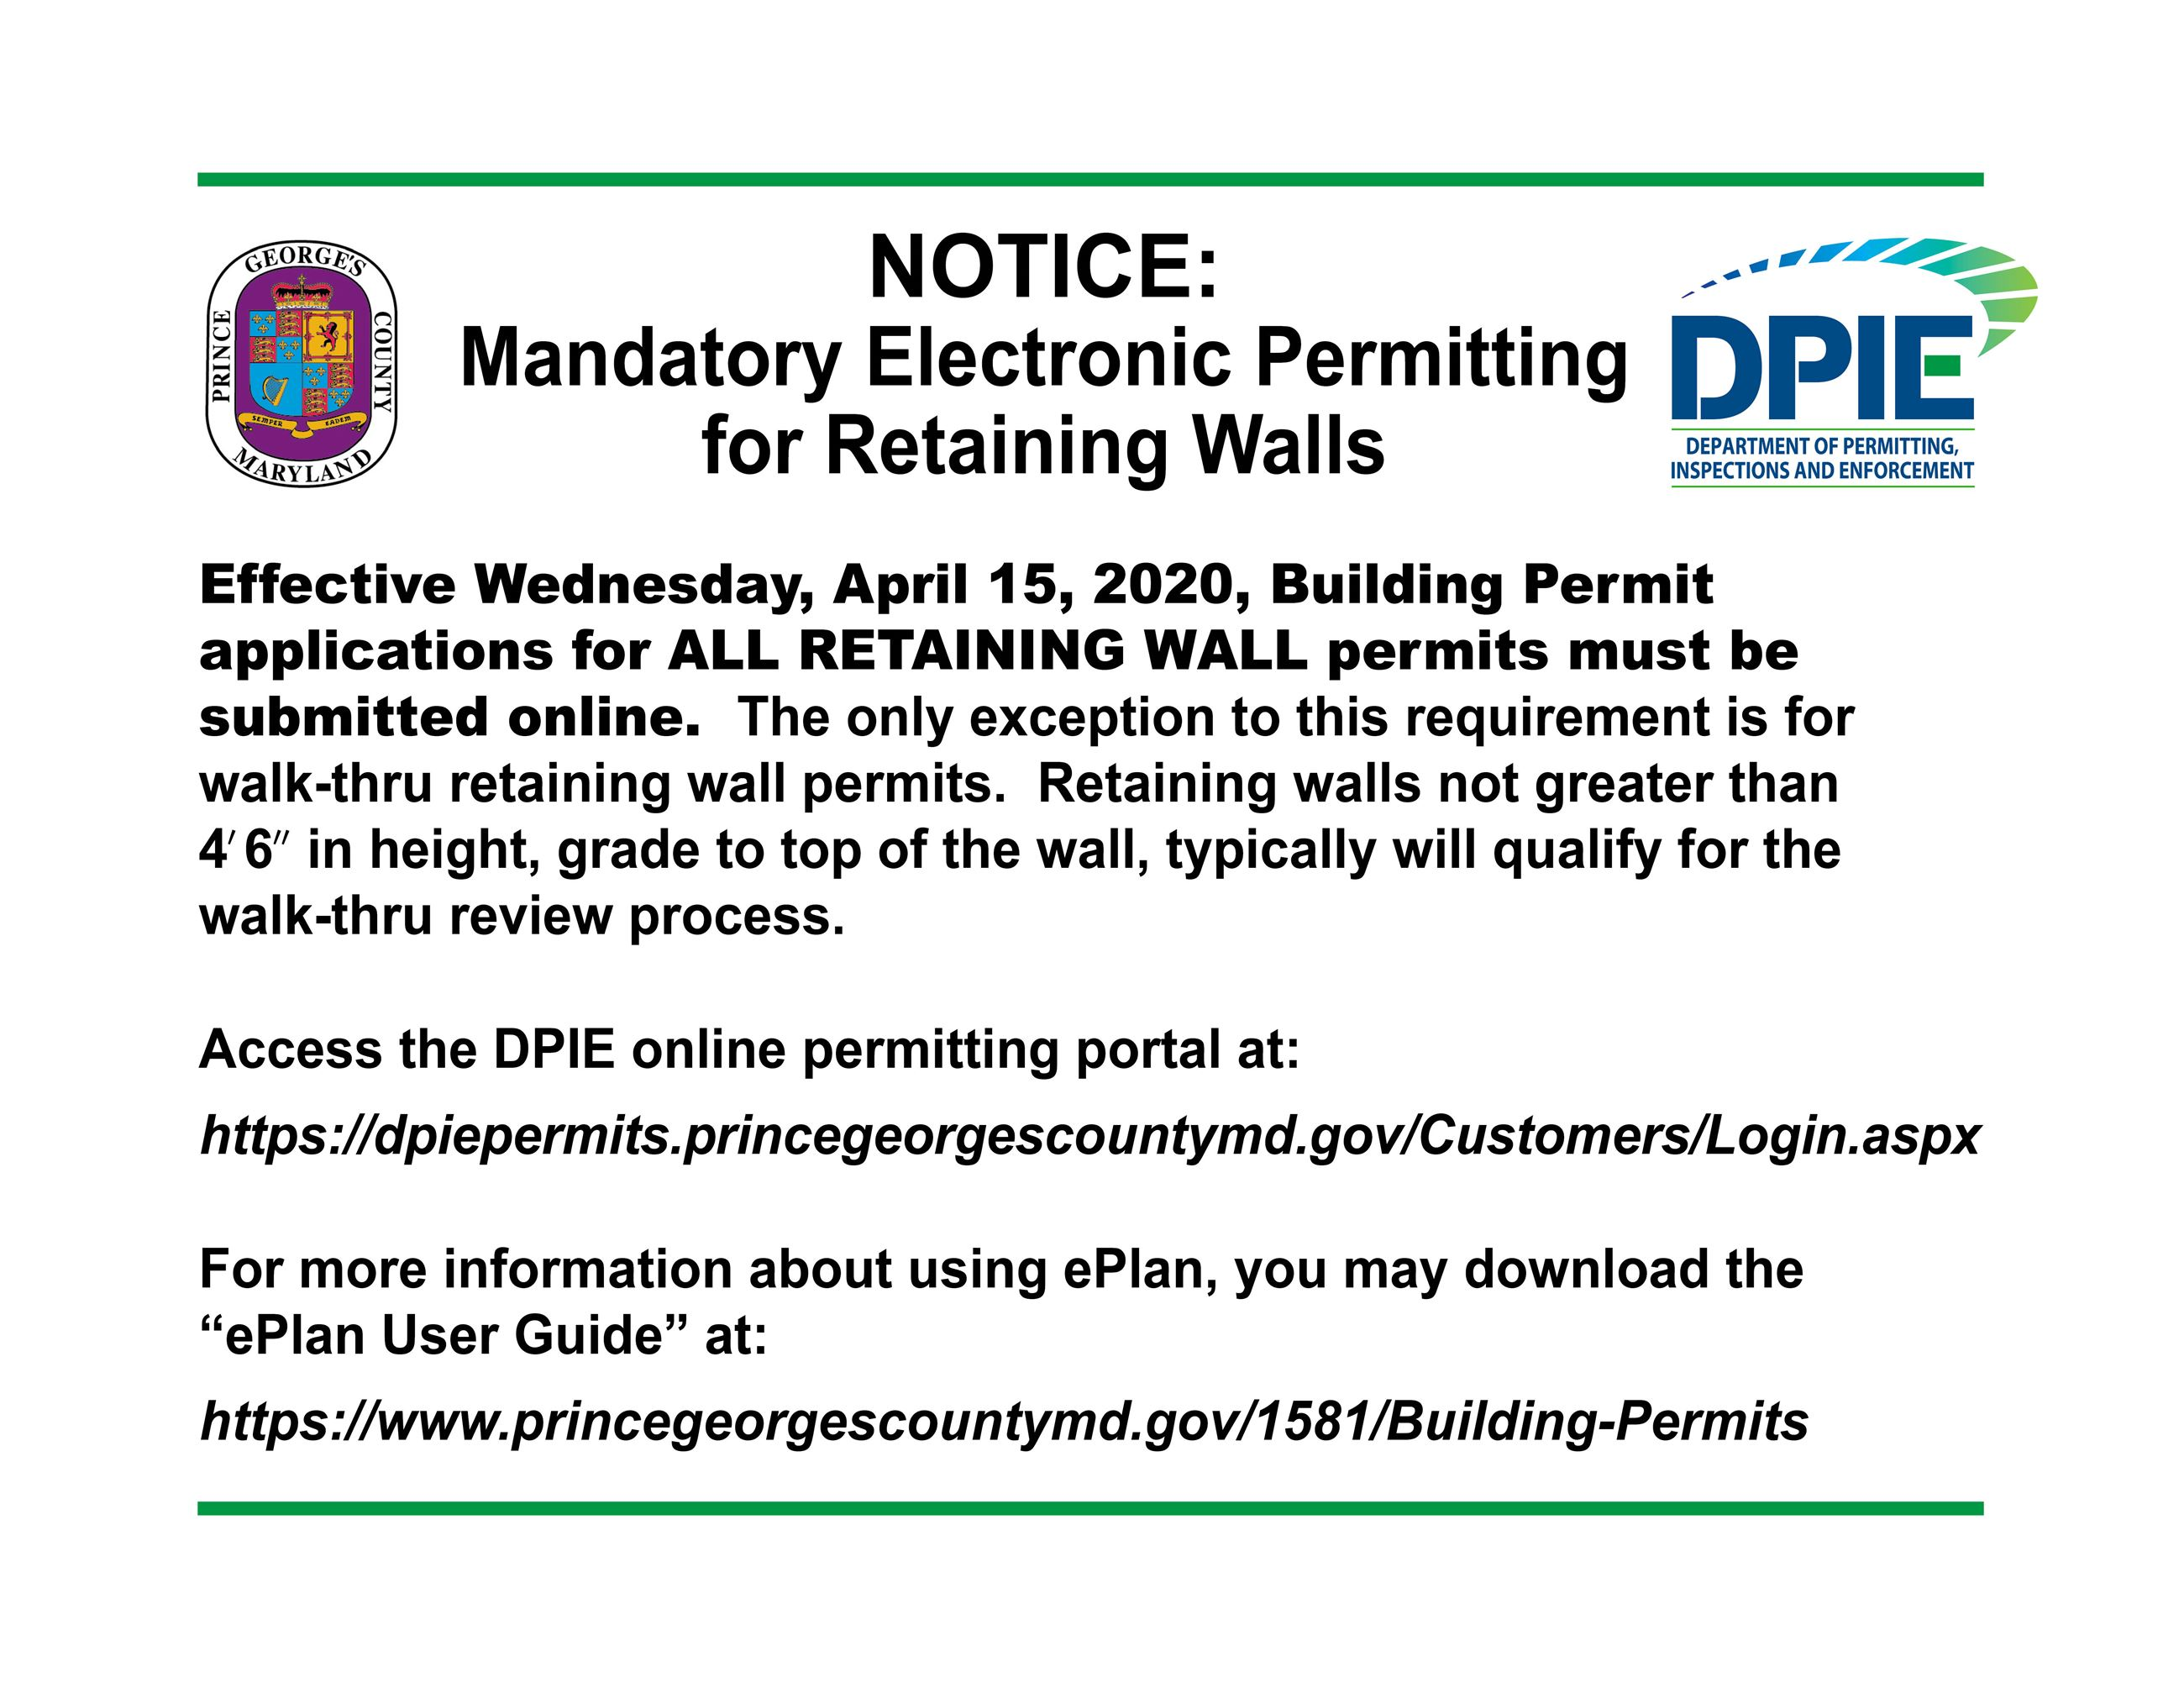 Mandatory Retaining Wall Notice for online permit applications